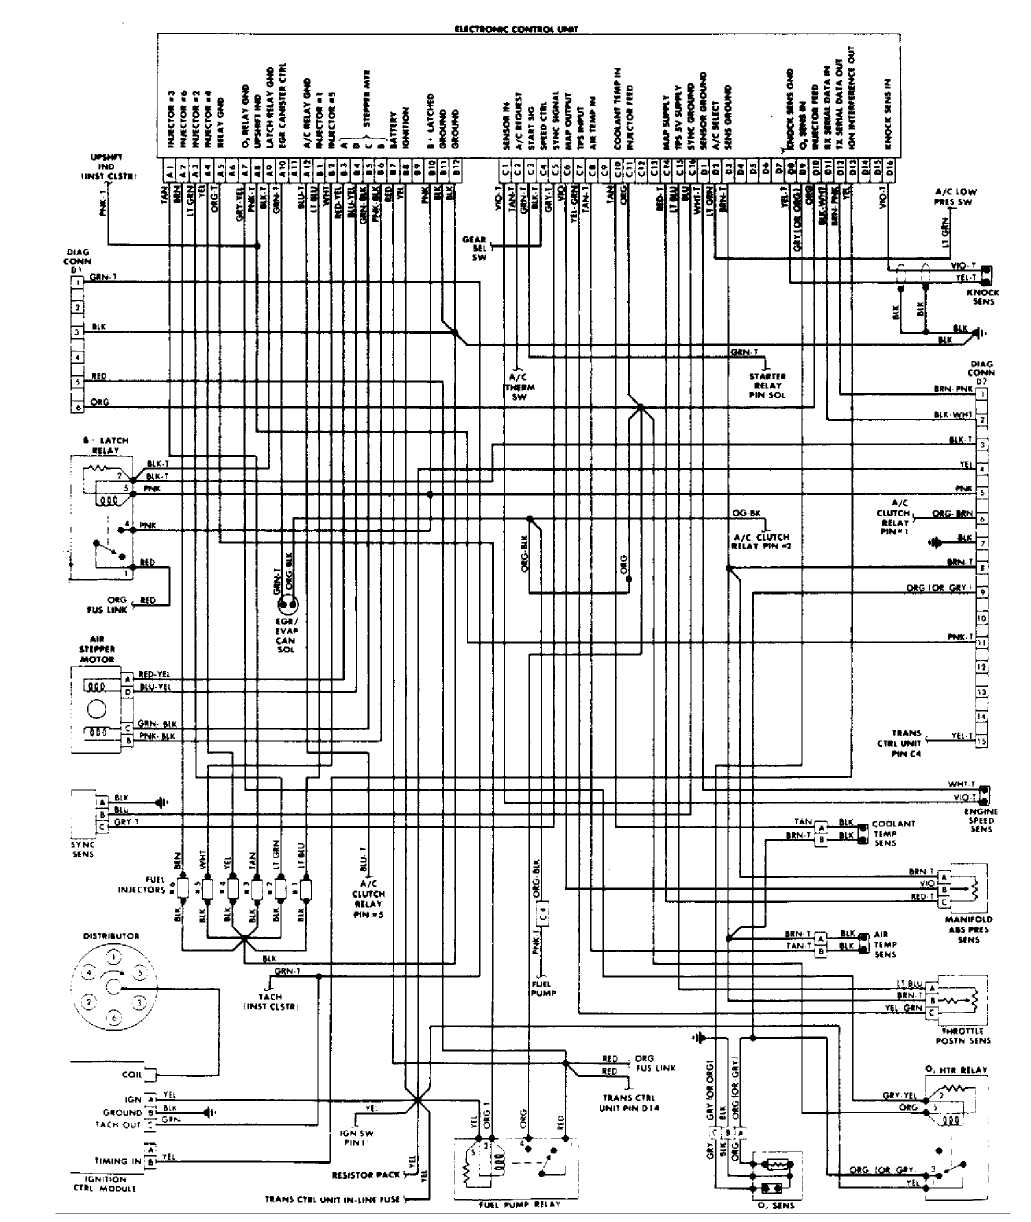 cat 3126 ecm wiring diagram | free wiring diagram cat 6a wire diagram